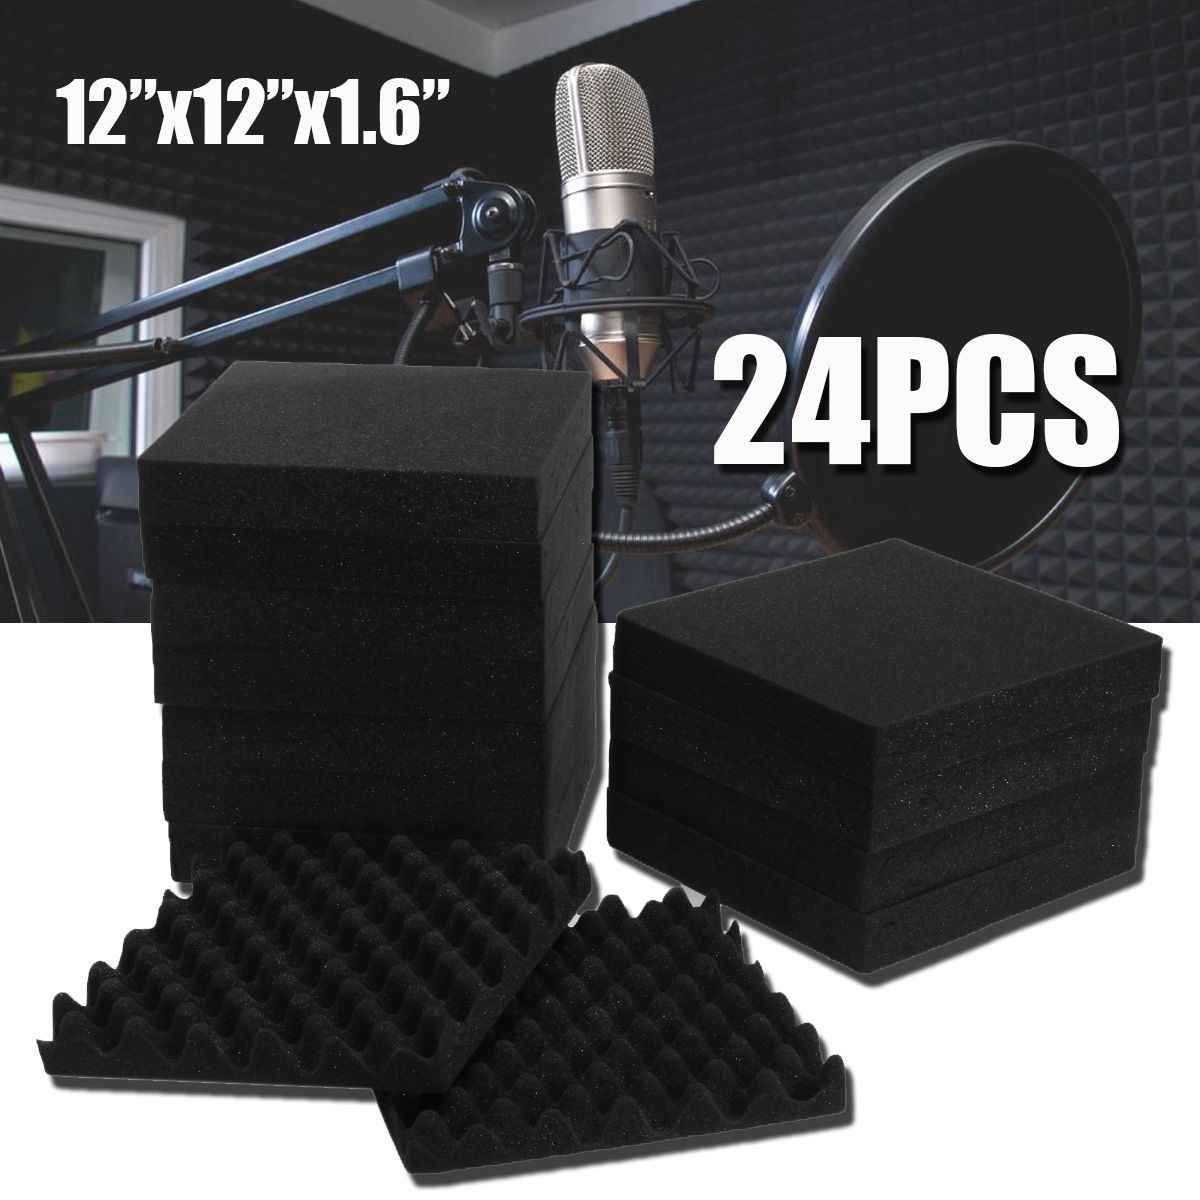 24Pcs 300x300x40mm Soundproofing Foam Studio Acoustic Foam Soundproof Absorption Treatment Panel Tile Wedge Polyurethane Fo